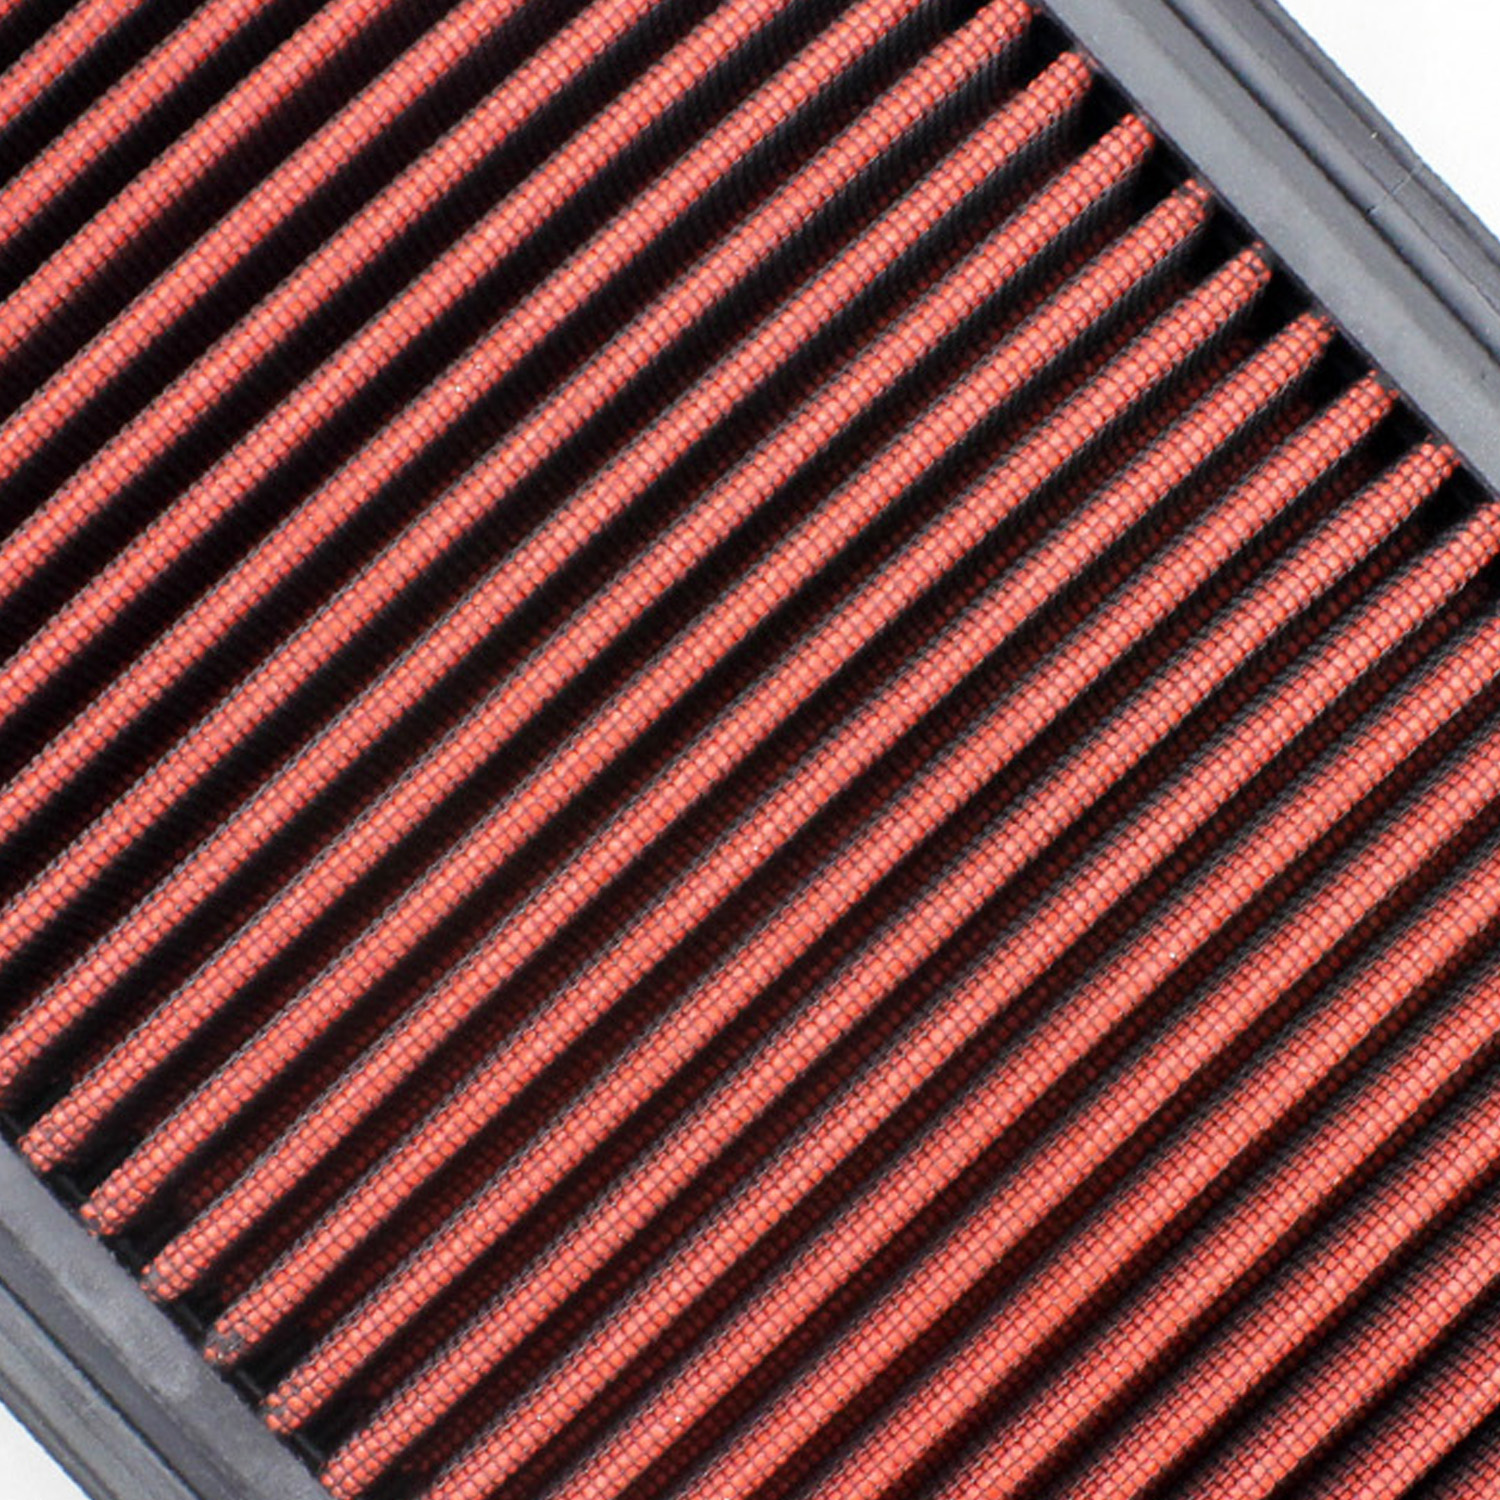 Air Filter Replacement High Flow Car Sports for Mazda 3 Axela 6 Atenza CX-4 CX-5 Premacy 2.0L 2.5L Biante 2.3L Intake Filters